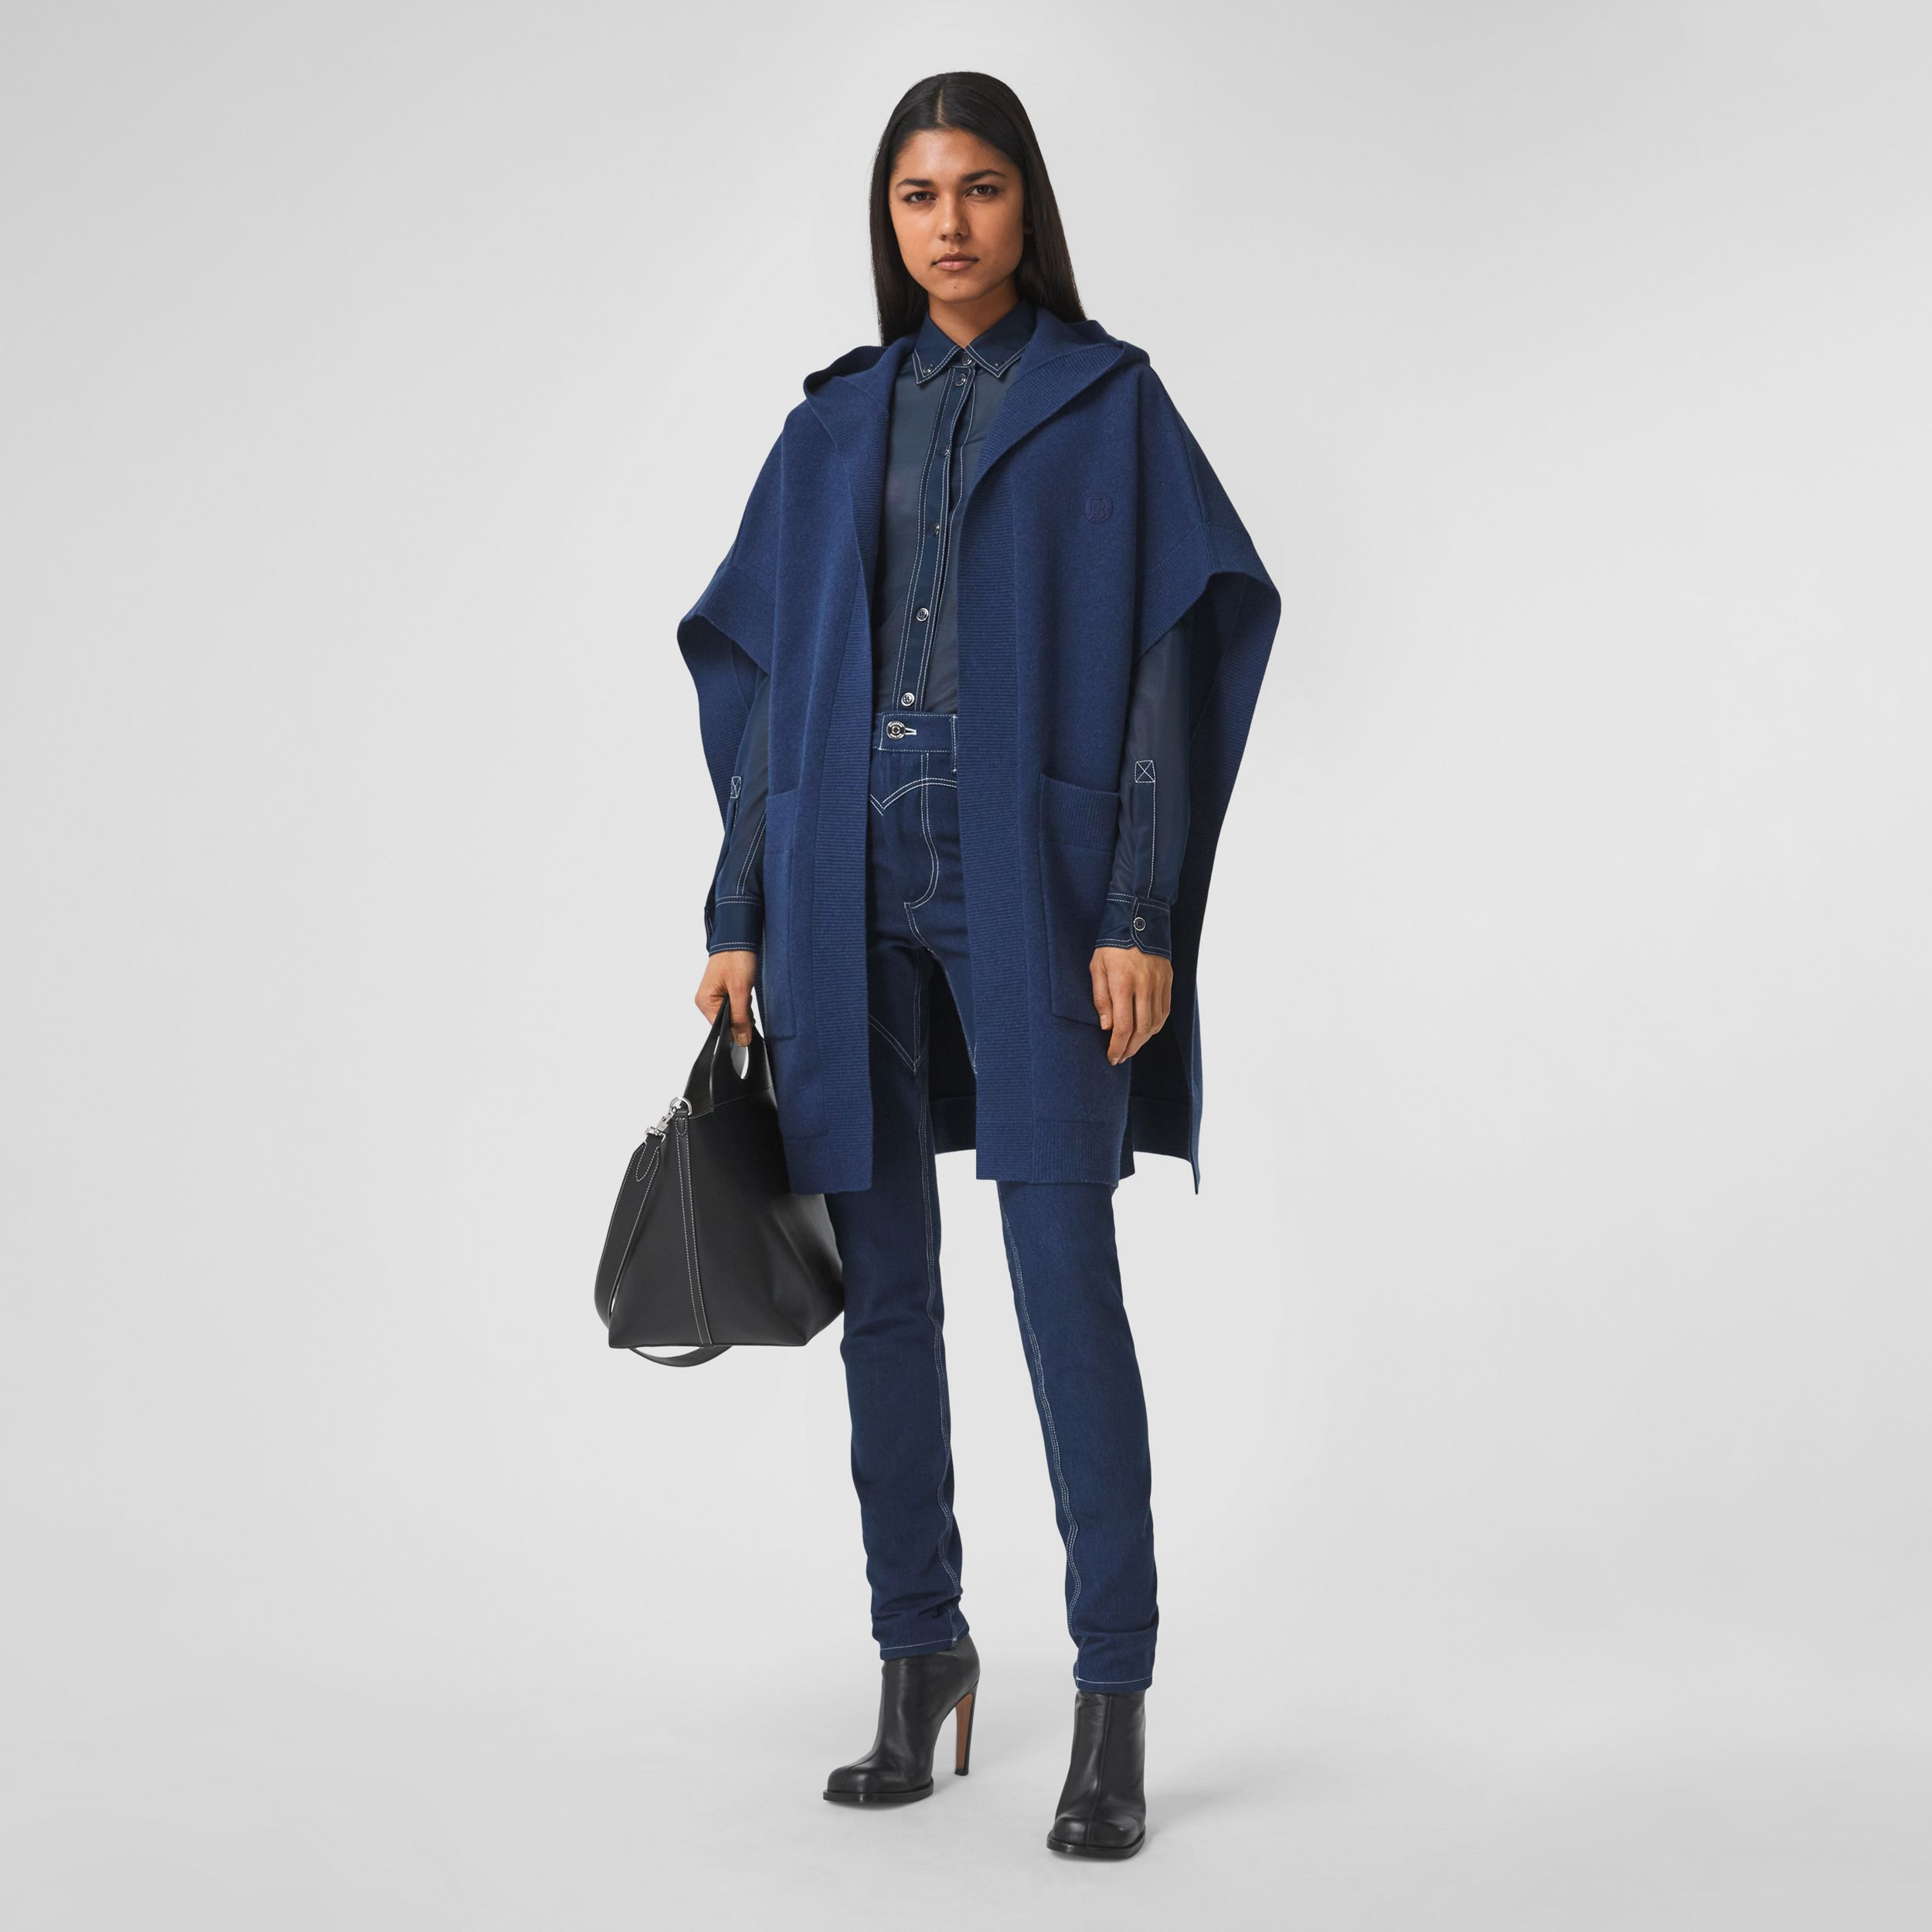 Monogram Motif Cashmere Blend Hooded Cape in Ink Blue - Women | Burberry United States - 1